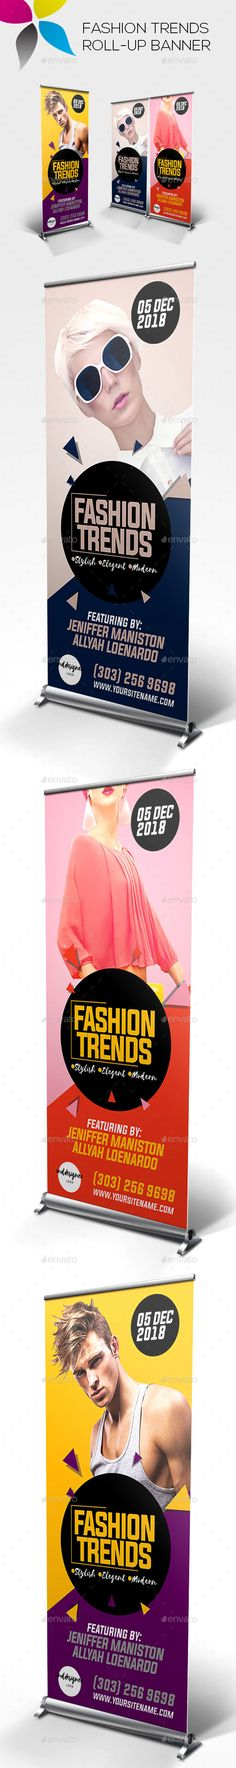 Fashion Trends Roll-up Banner Design Template - Signage Ads Banner Print Template PSD. Download here: https://graphicriver.net/item/fashion-trends-rollup-banner/19317552?ref=yinkira